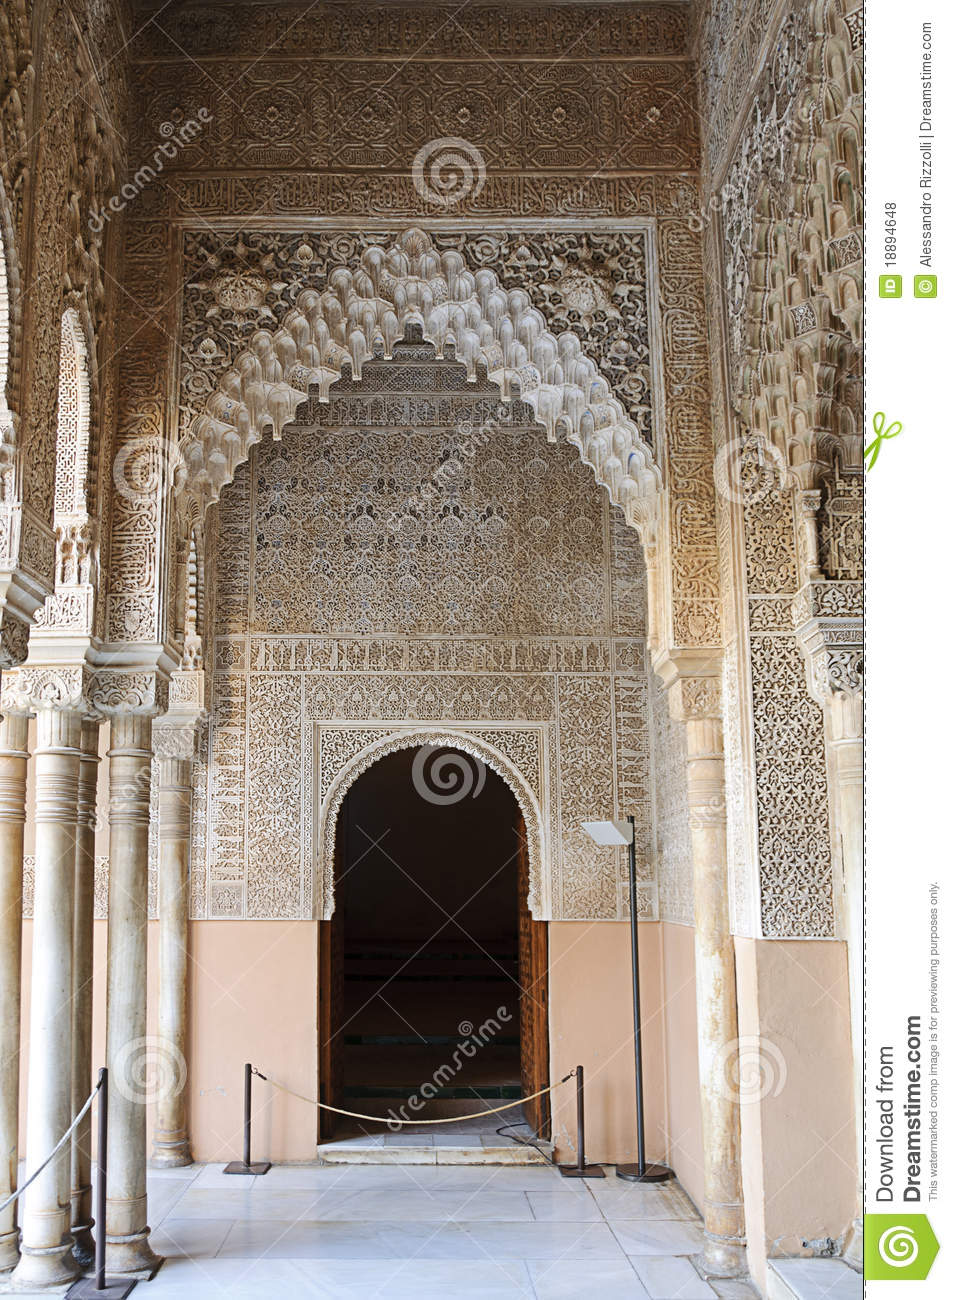 Moorish art and architecture in the alhambra royalty free for Art et architecture